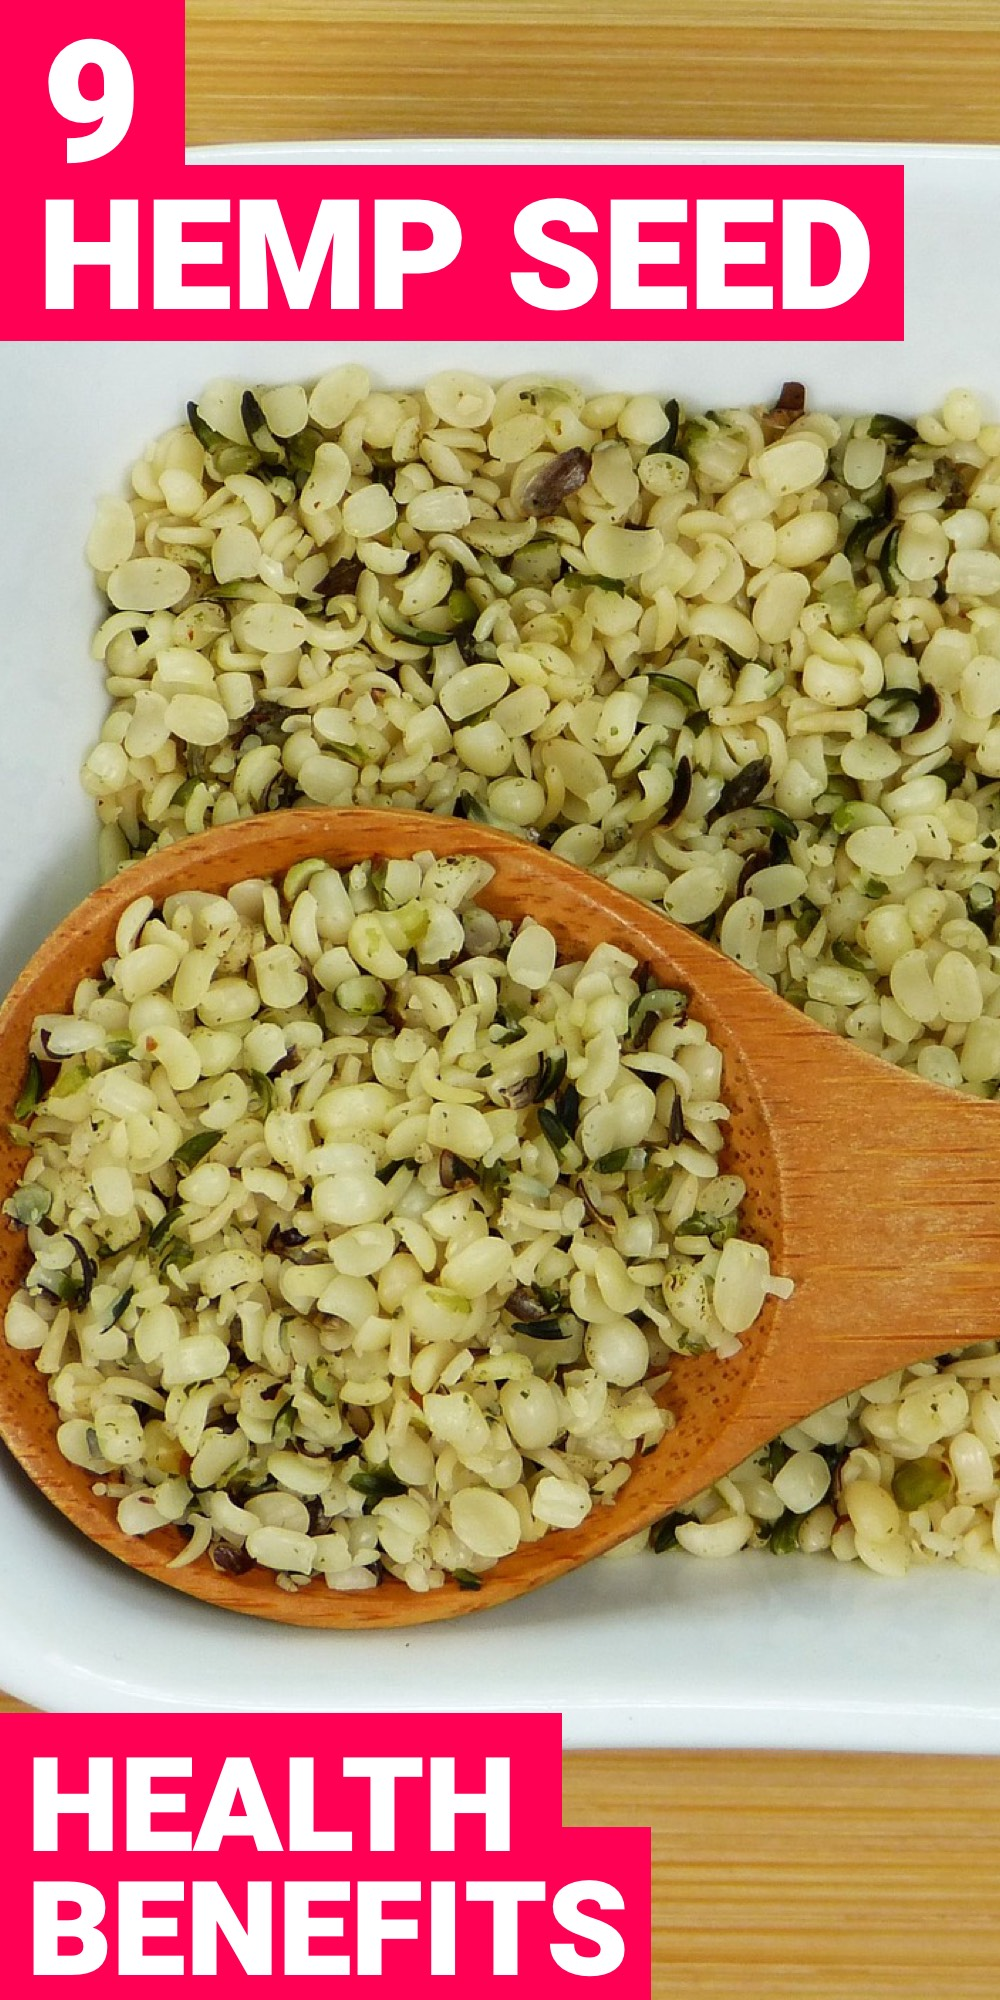 Having hemp seeds as part of your diet will be great for your health. Here are 9 hemp seed benefits that you'll love.